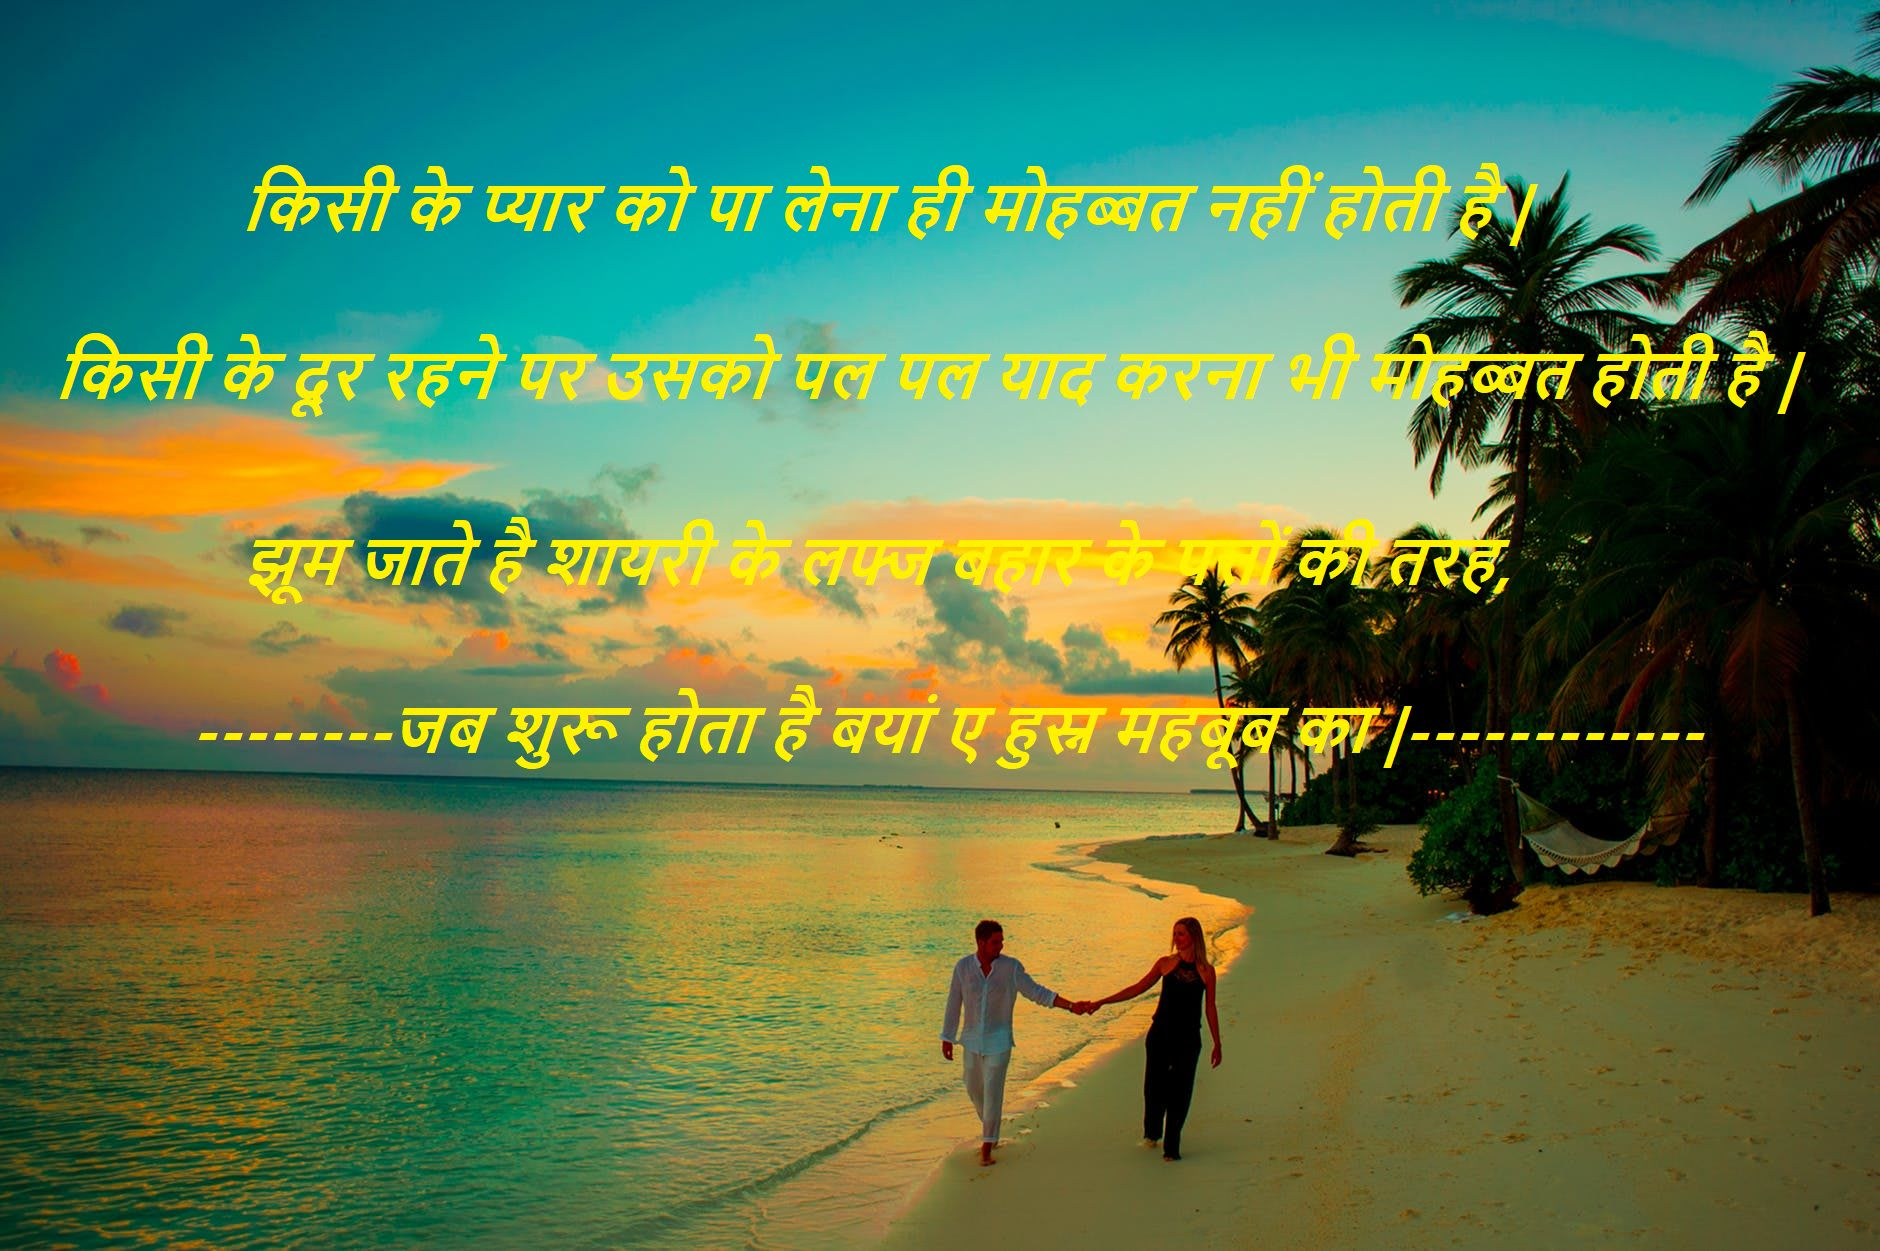 PYAR BHARI URDU SHAYARI for WIFE